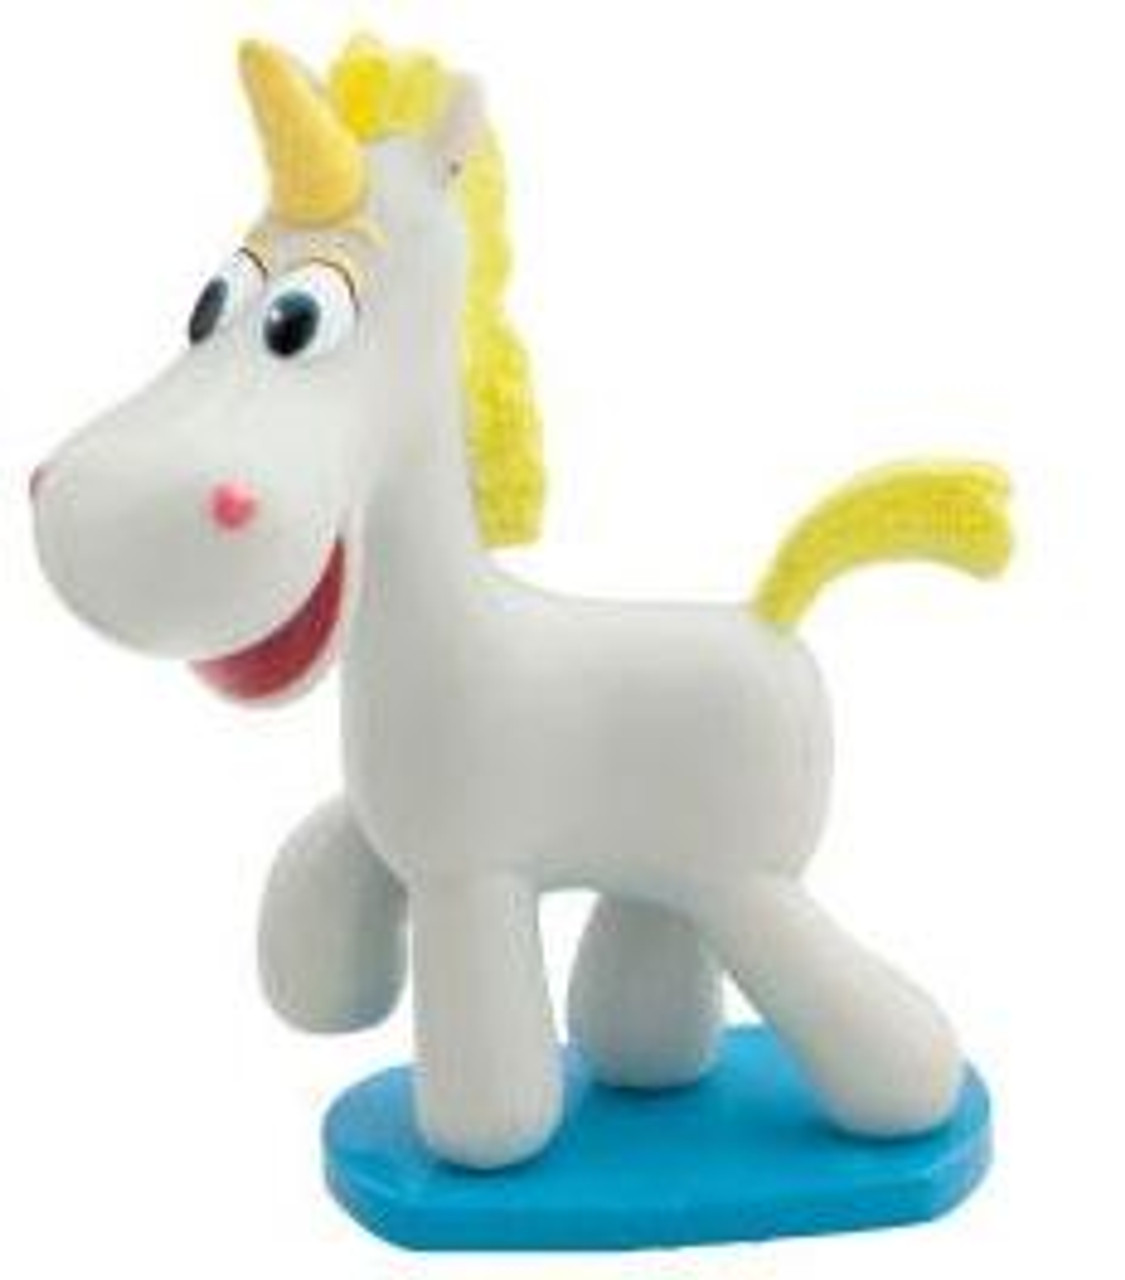 Disney Toy Story 3 Buttercup Exclusive 2-Inch PVC Figure [Loose]